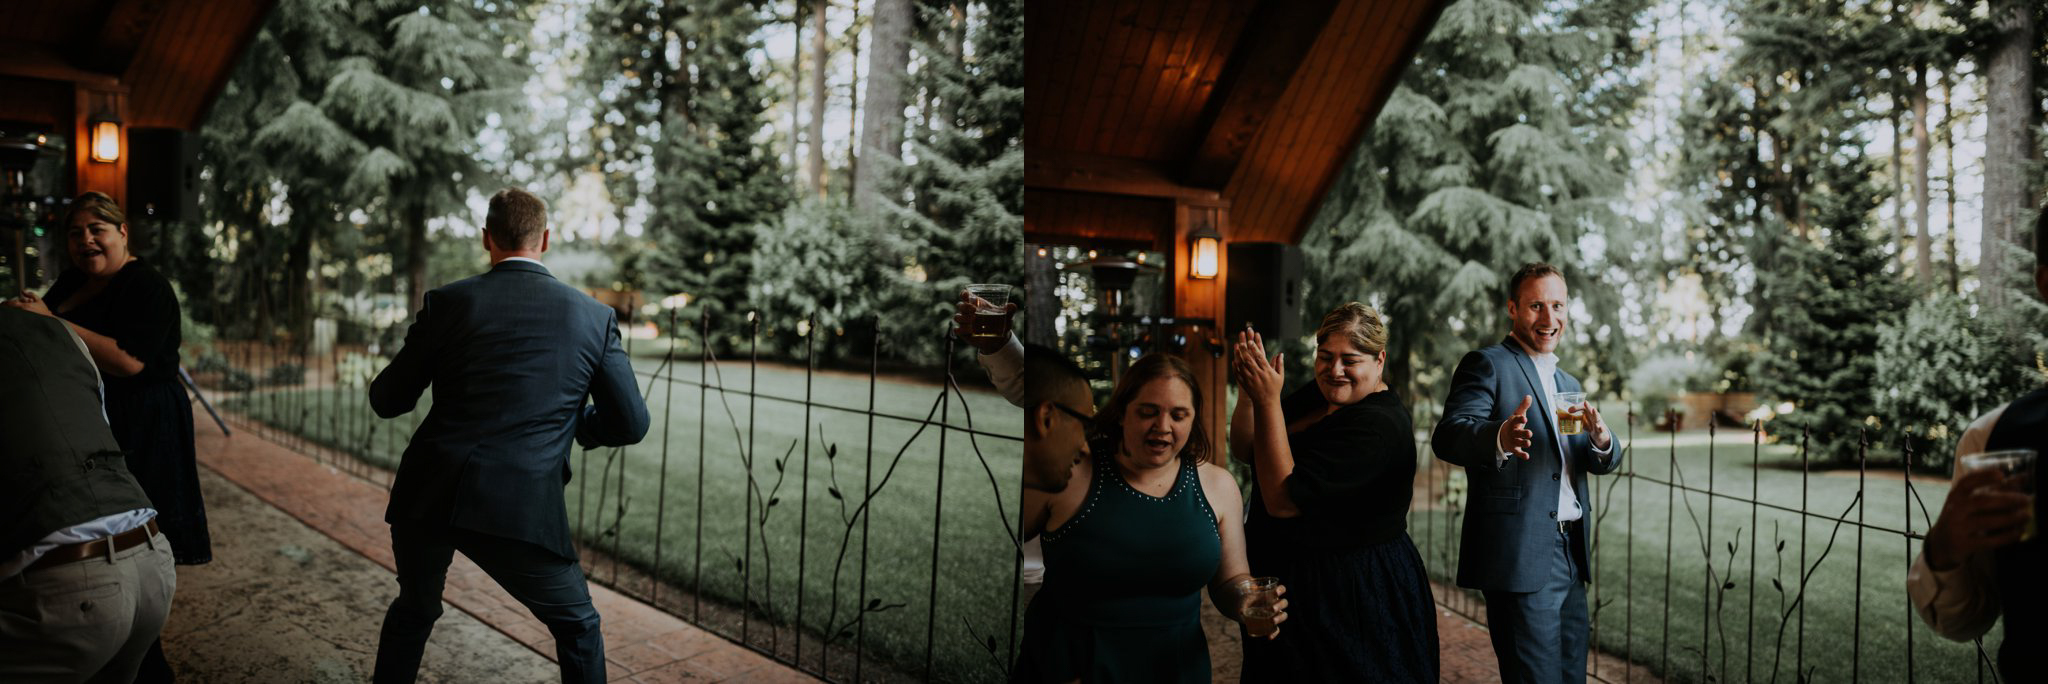 evergreen-gardens-bellingham-wedding-seattle-photographer-caitlyn-nikula-110.jpg